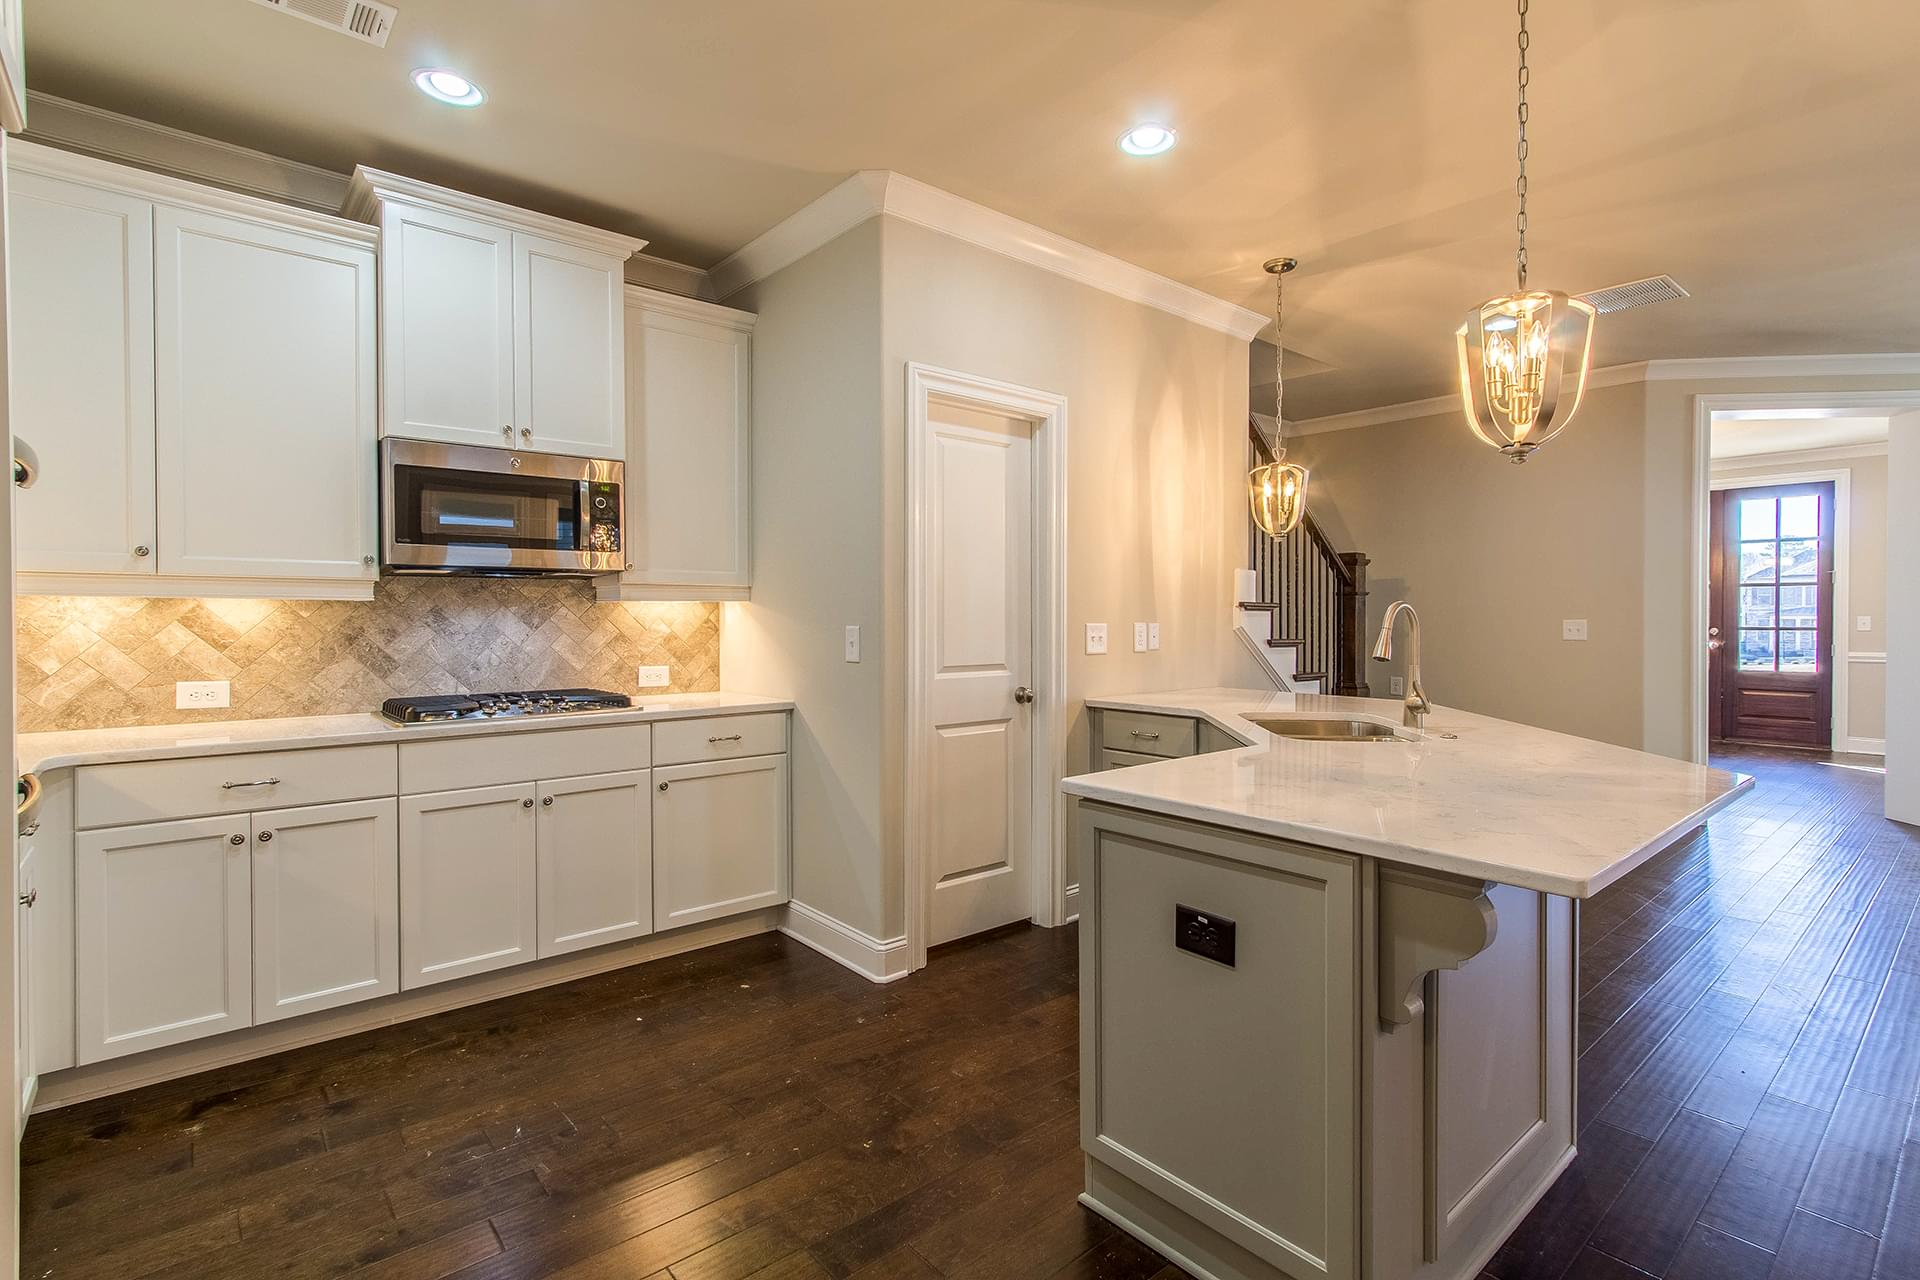 The Kentmere New Home in Johns Creek GA